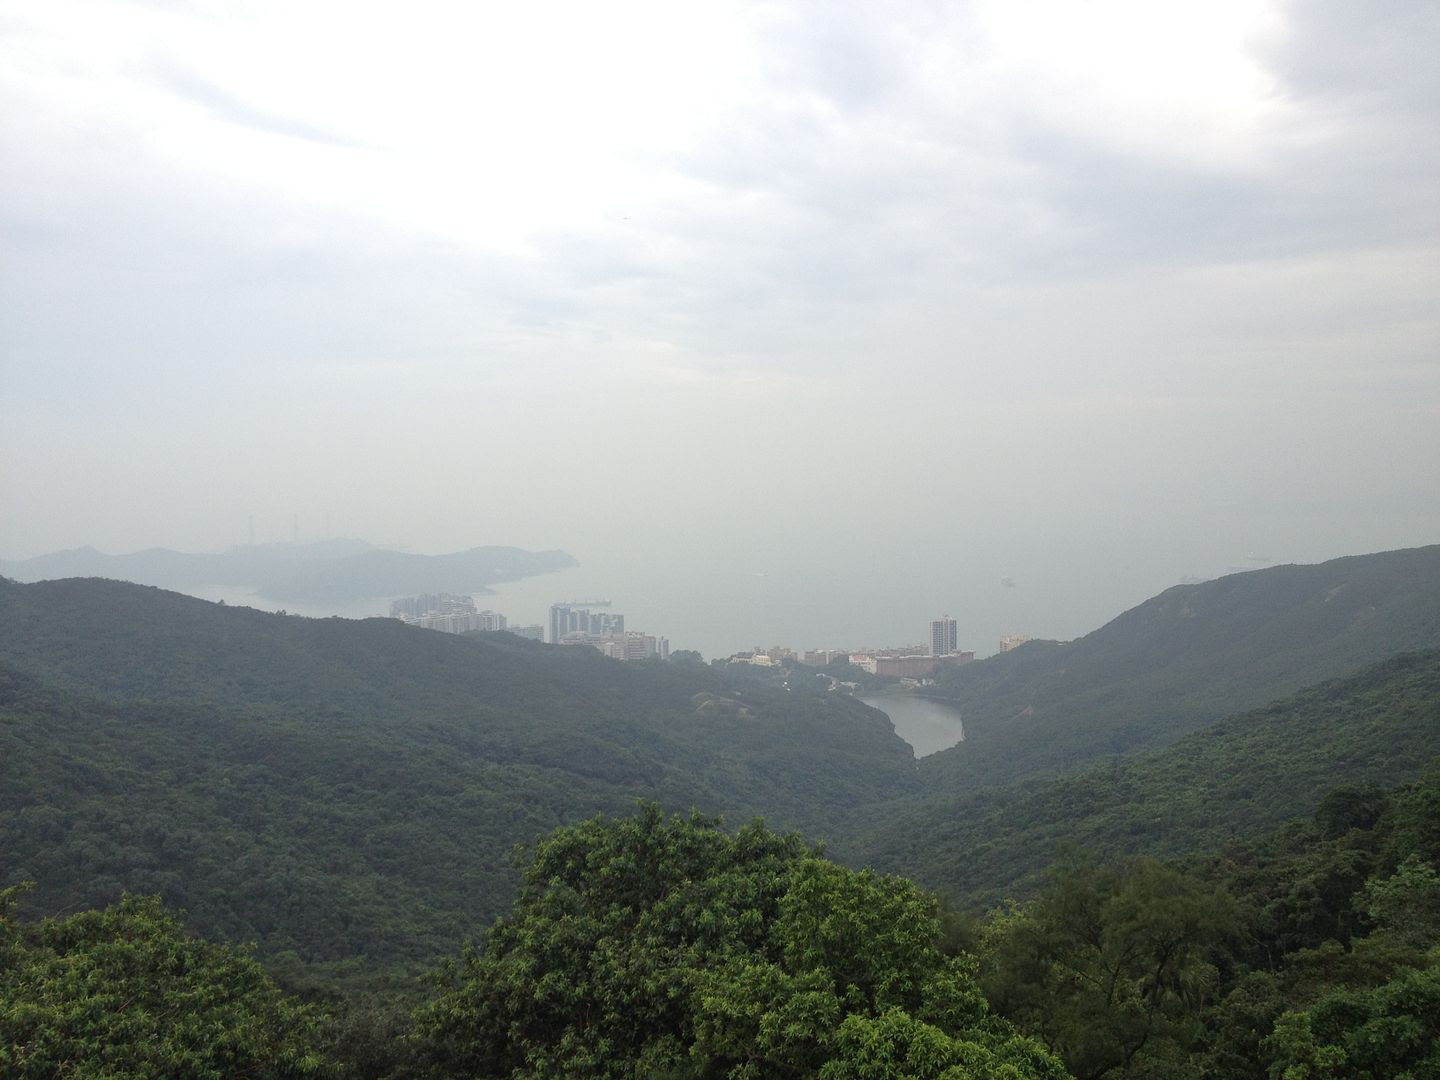 Greener Side of Hong Kong from Victoria Peak photo 2013-09-28172105_zps2045d475.jpg